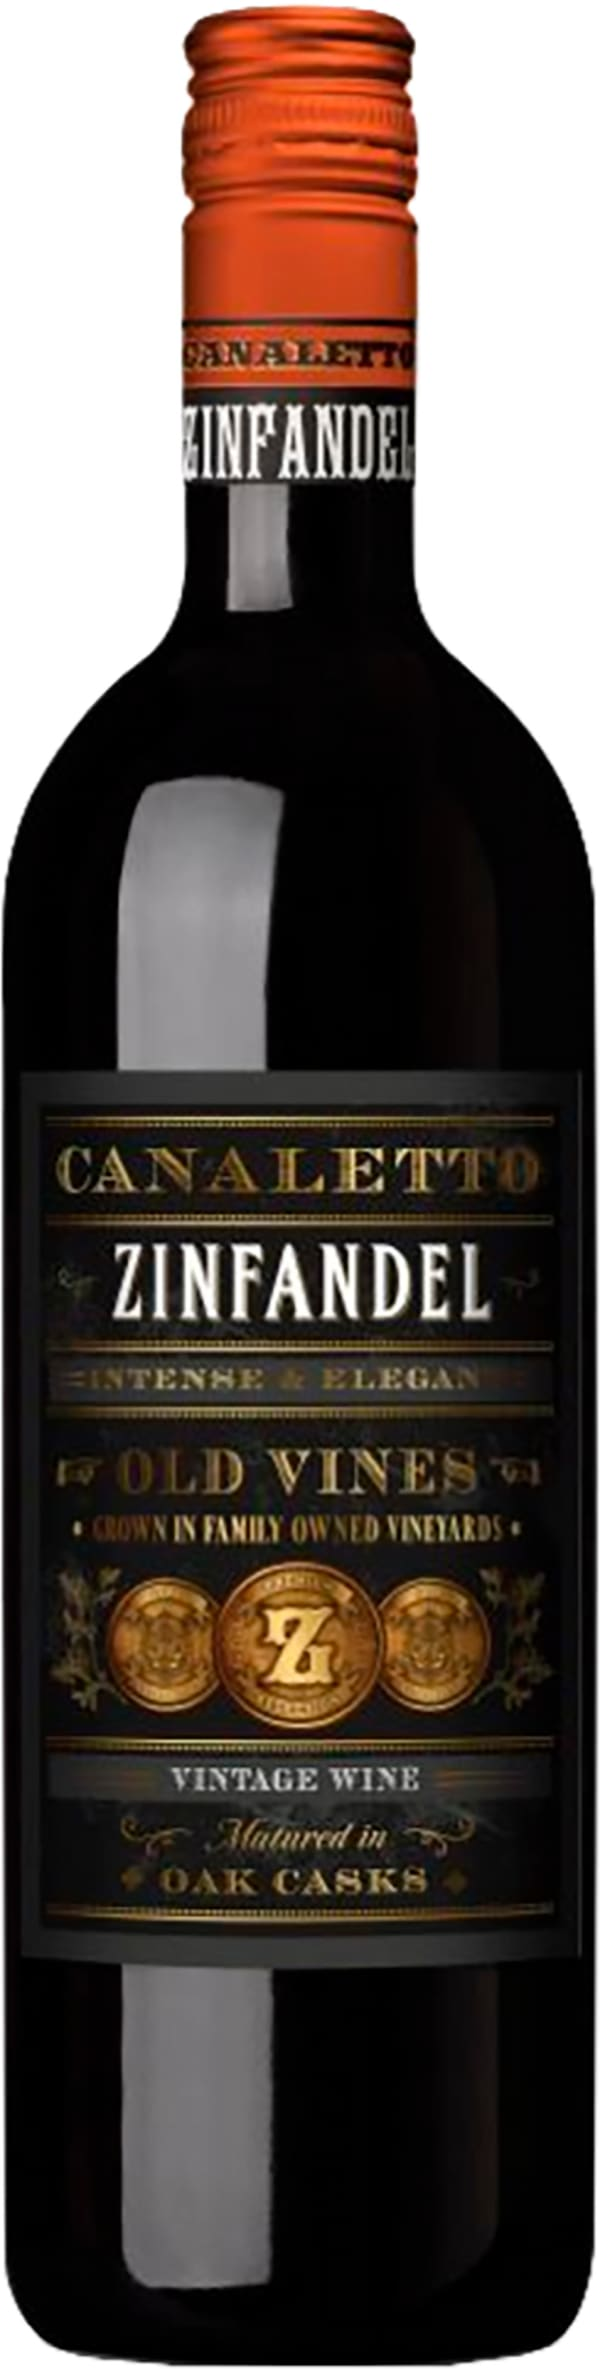 Canaletto Zinfandel 2015